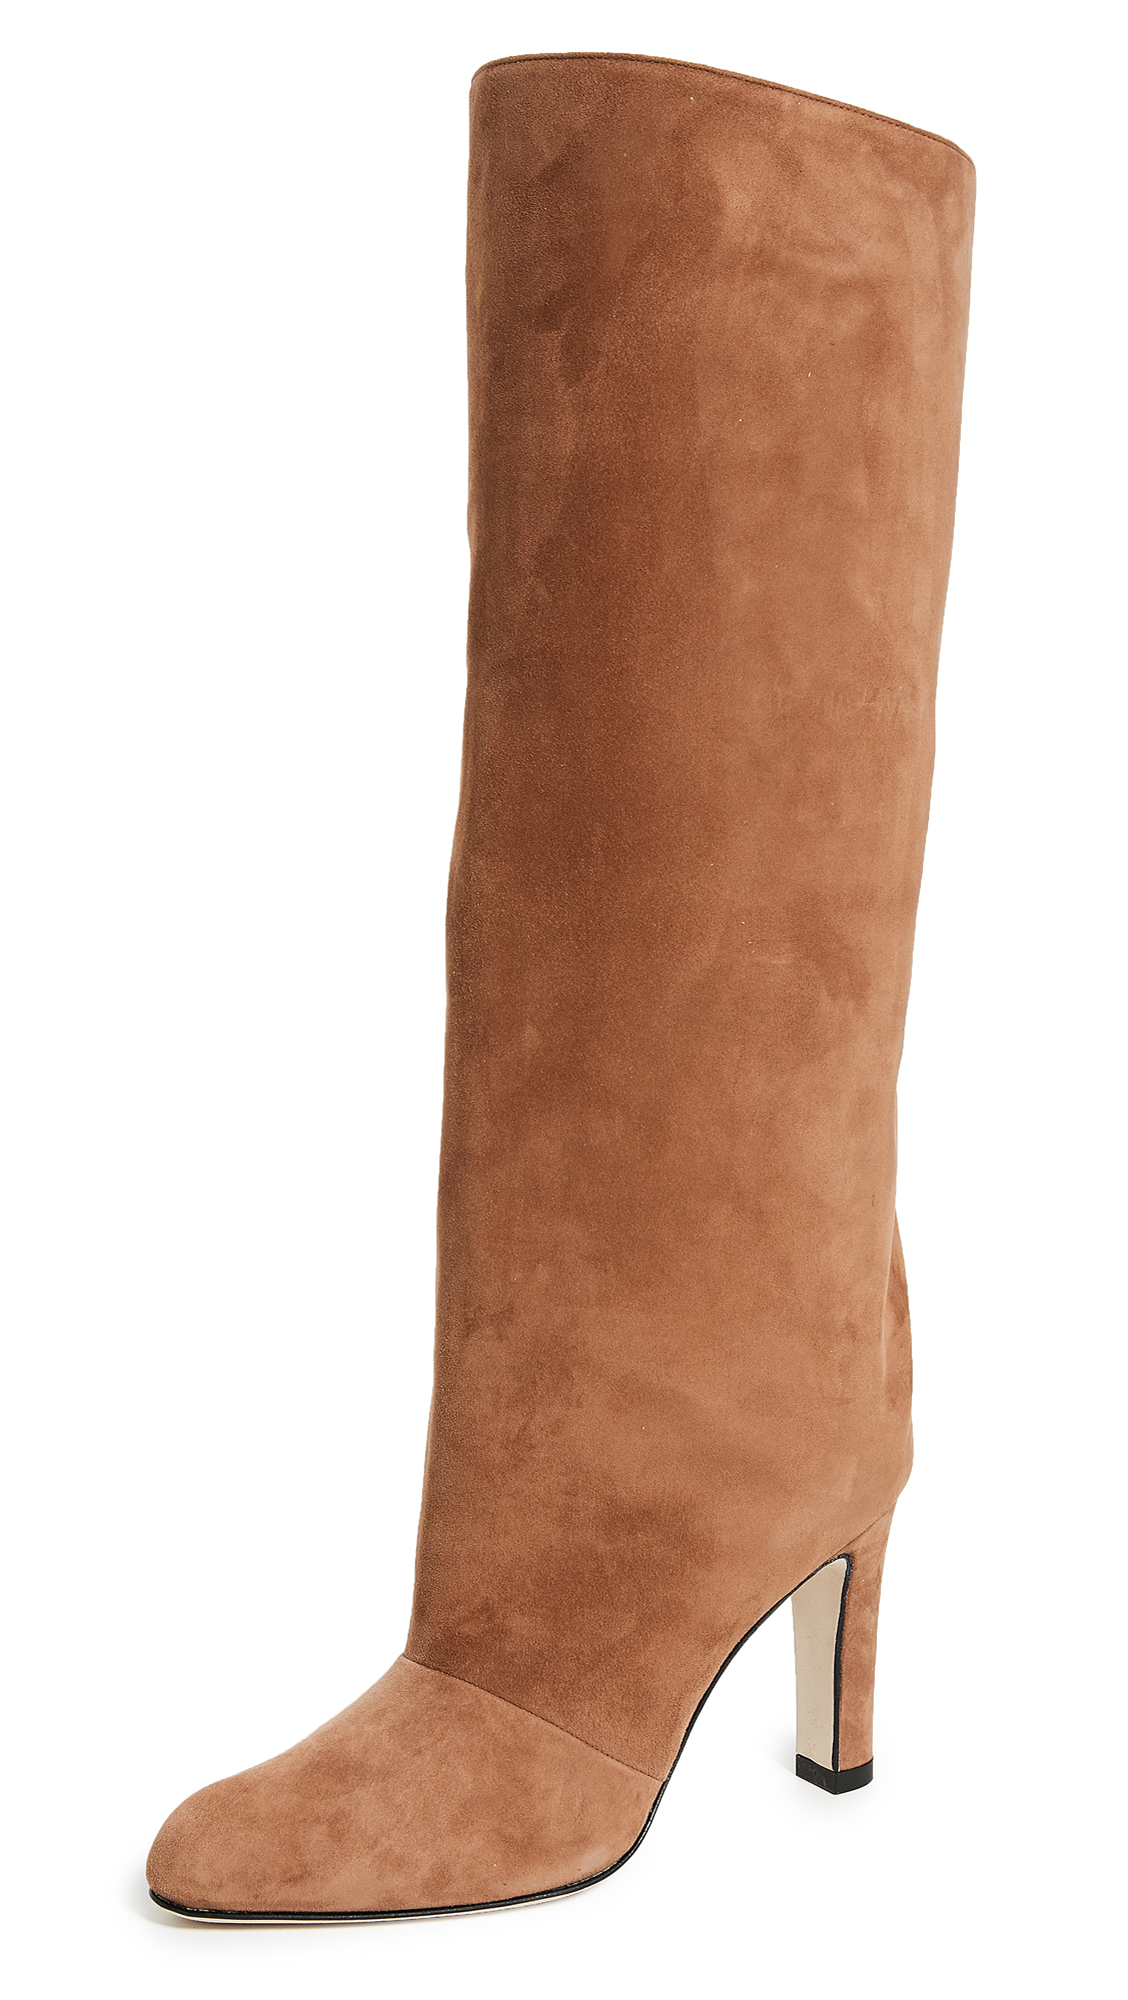 MARSKINRYYPPY Margar Tall Boots - Maple